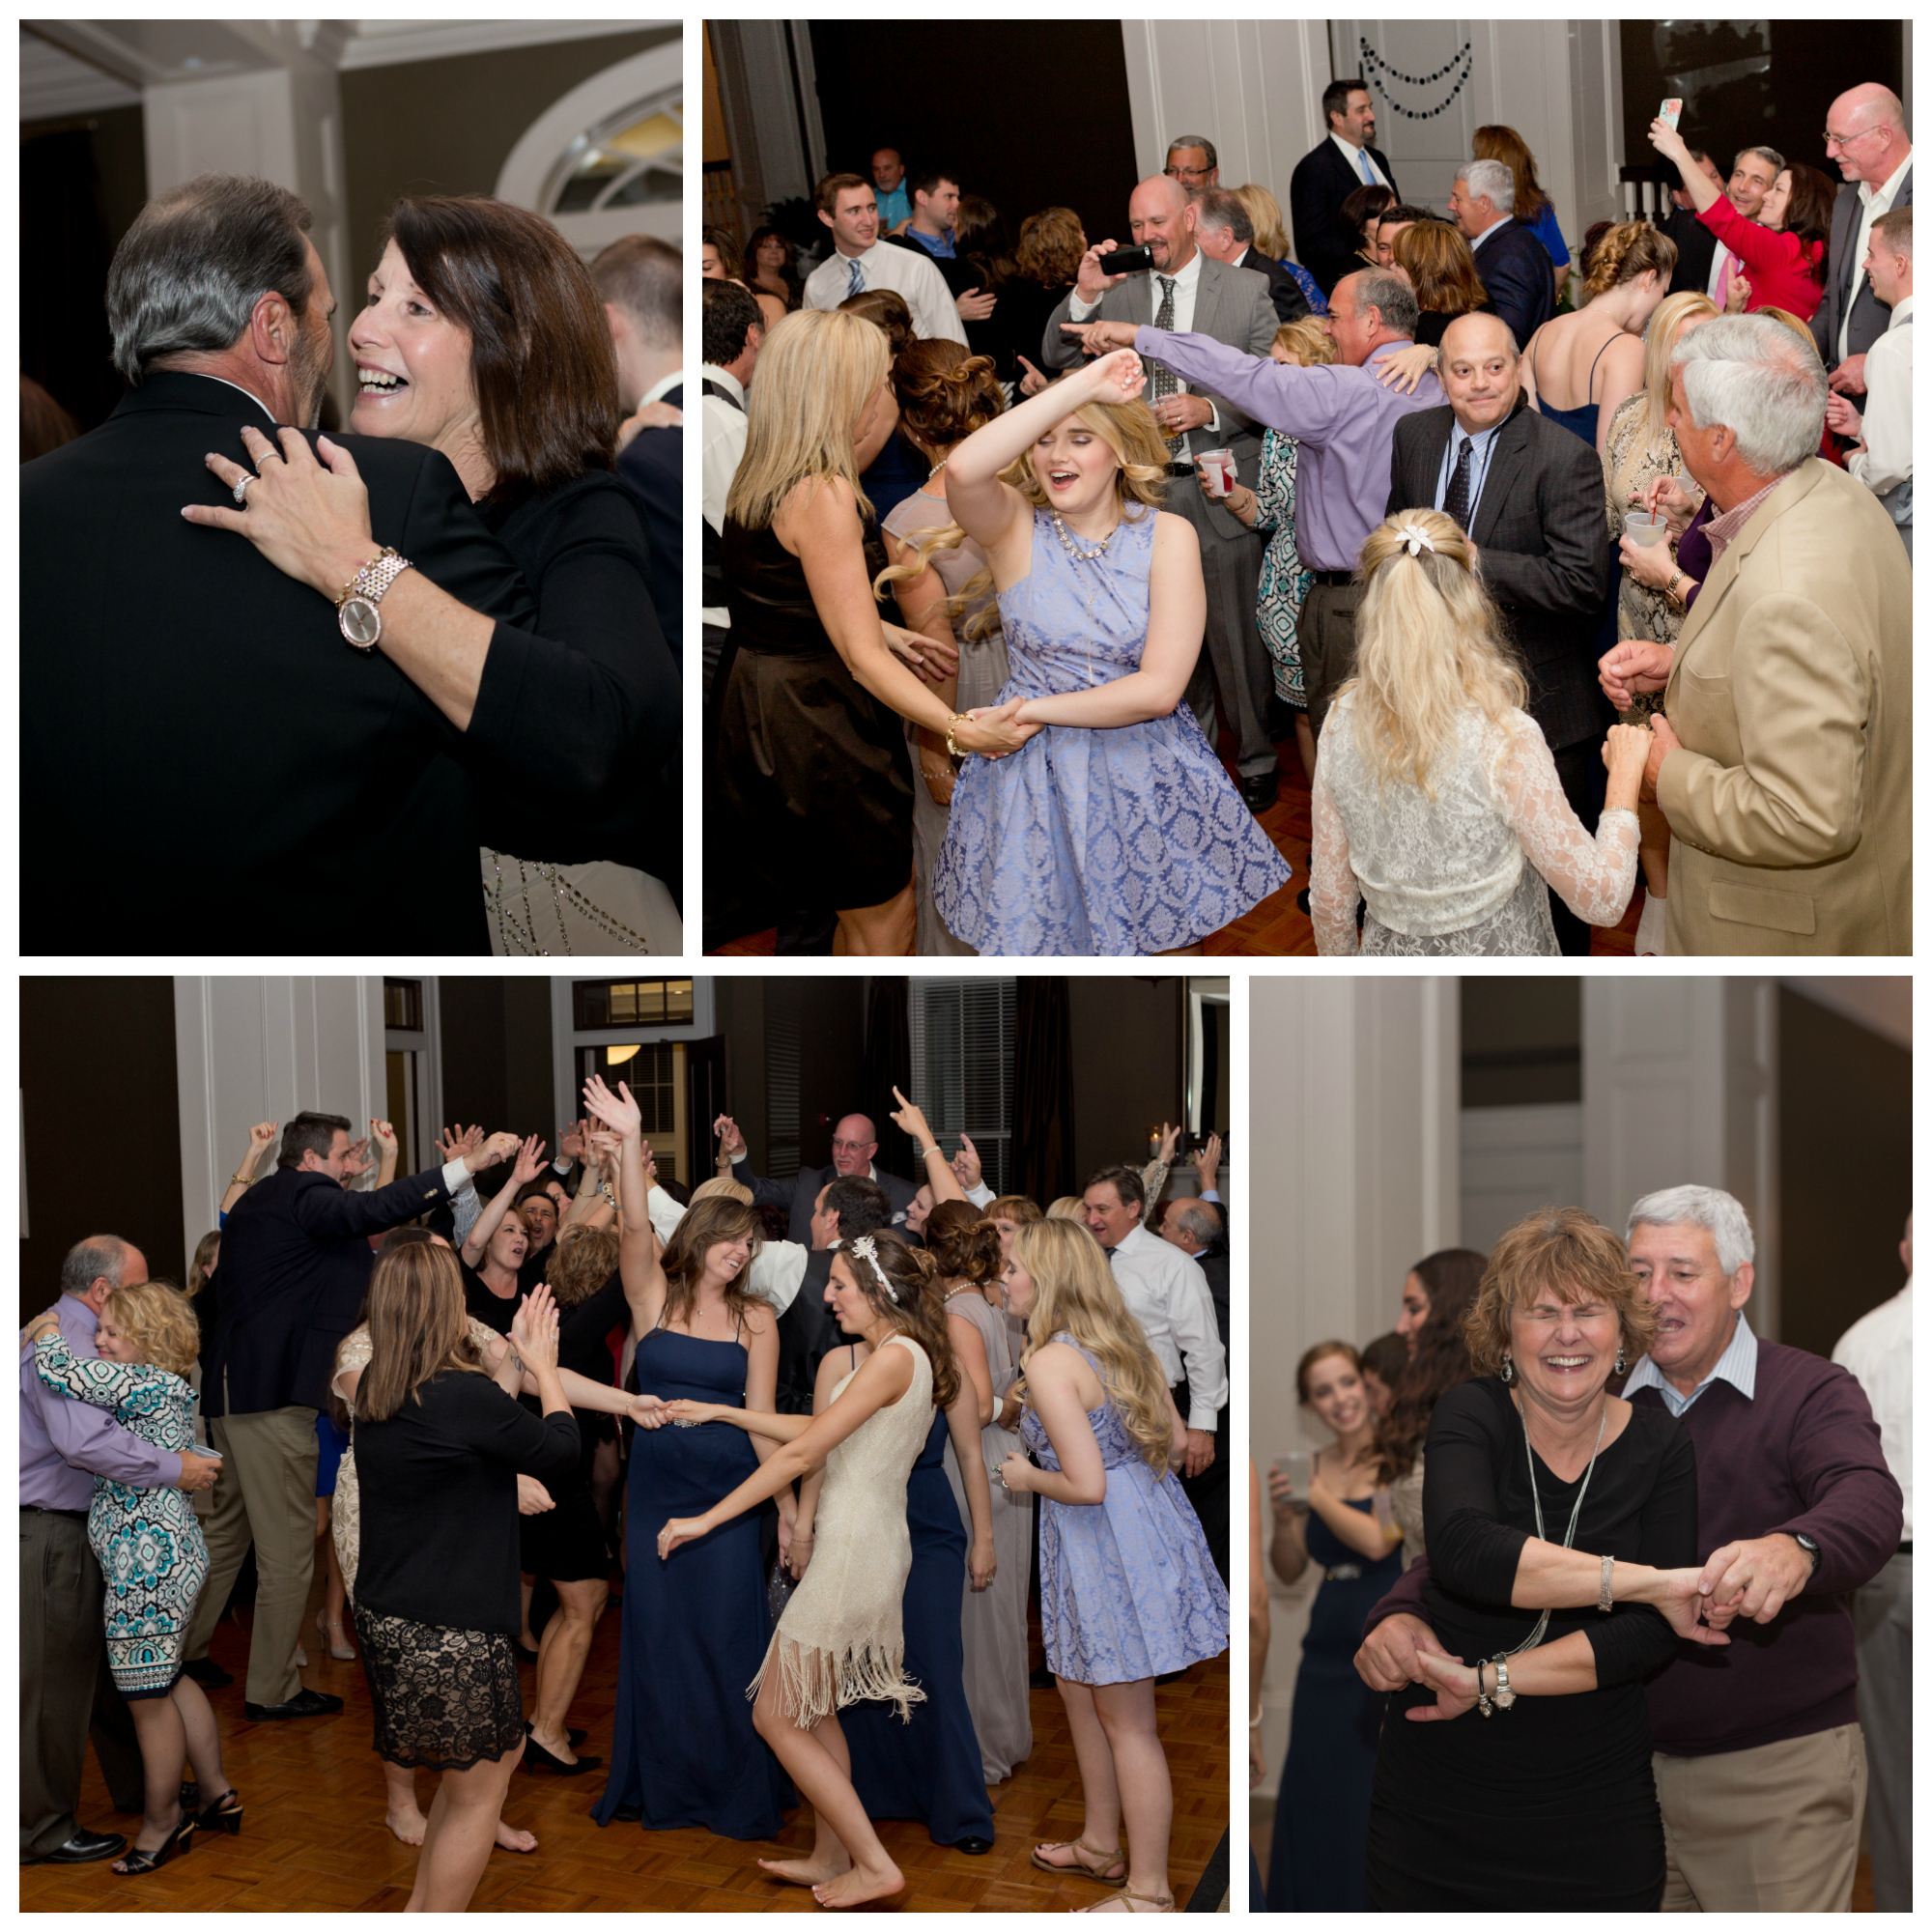 wedding reception group dancing